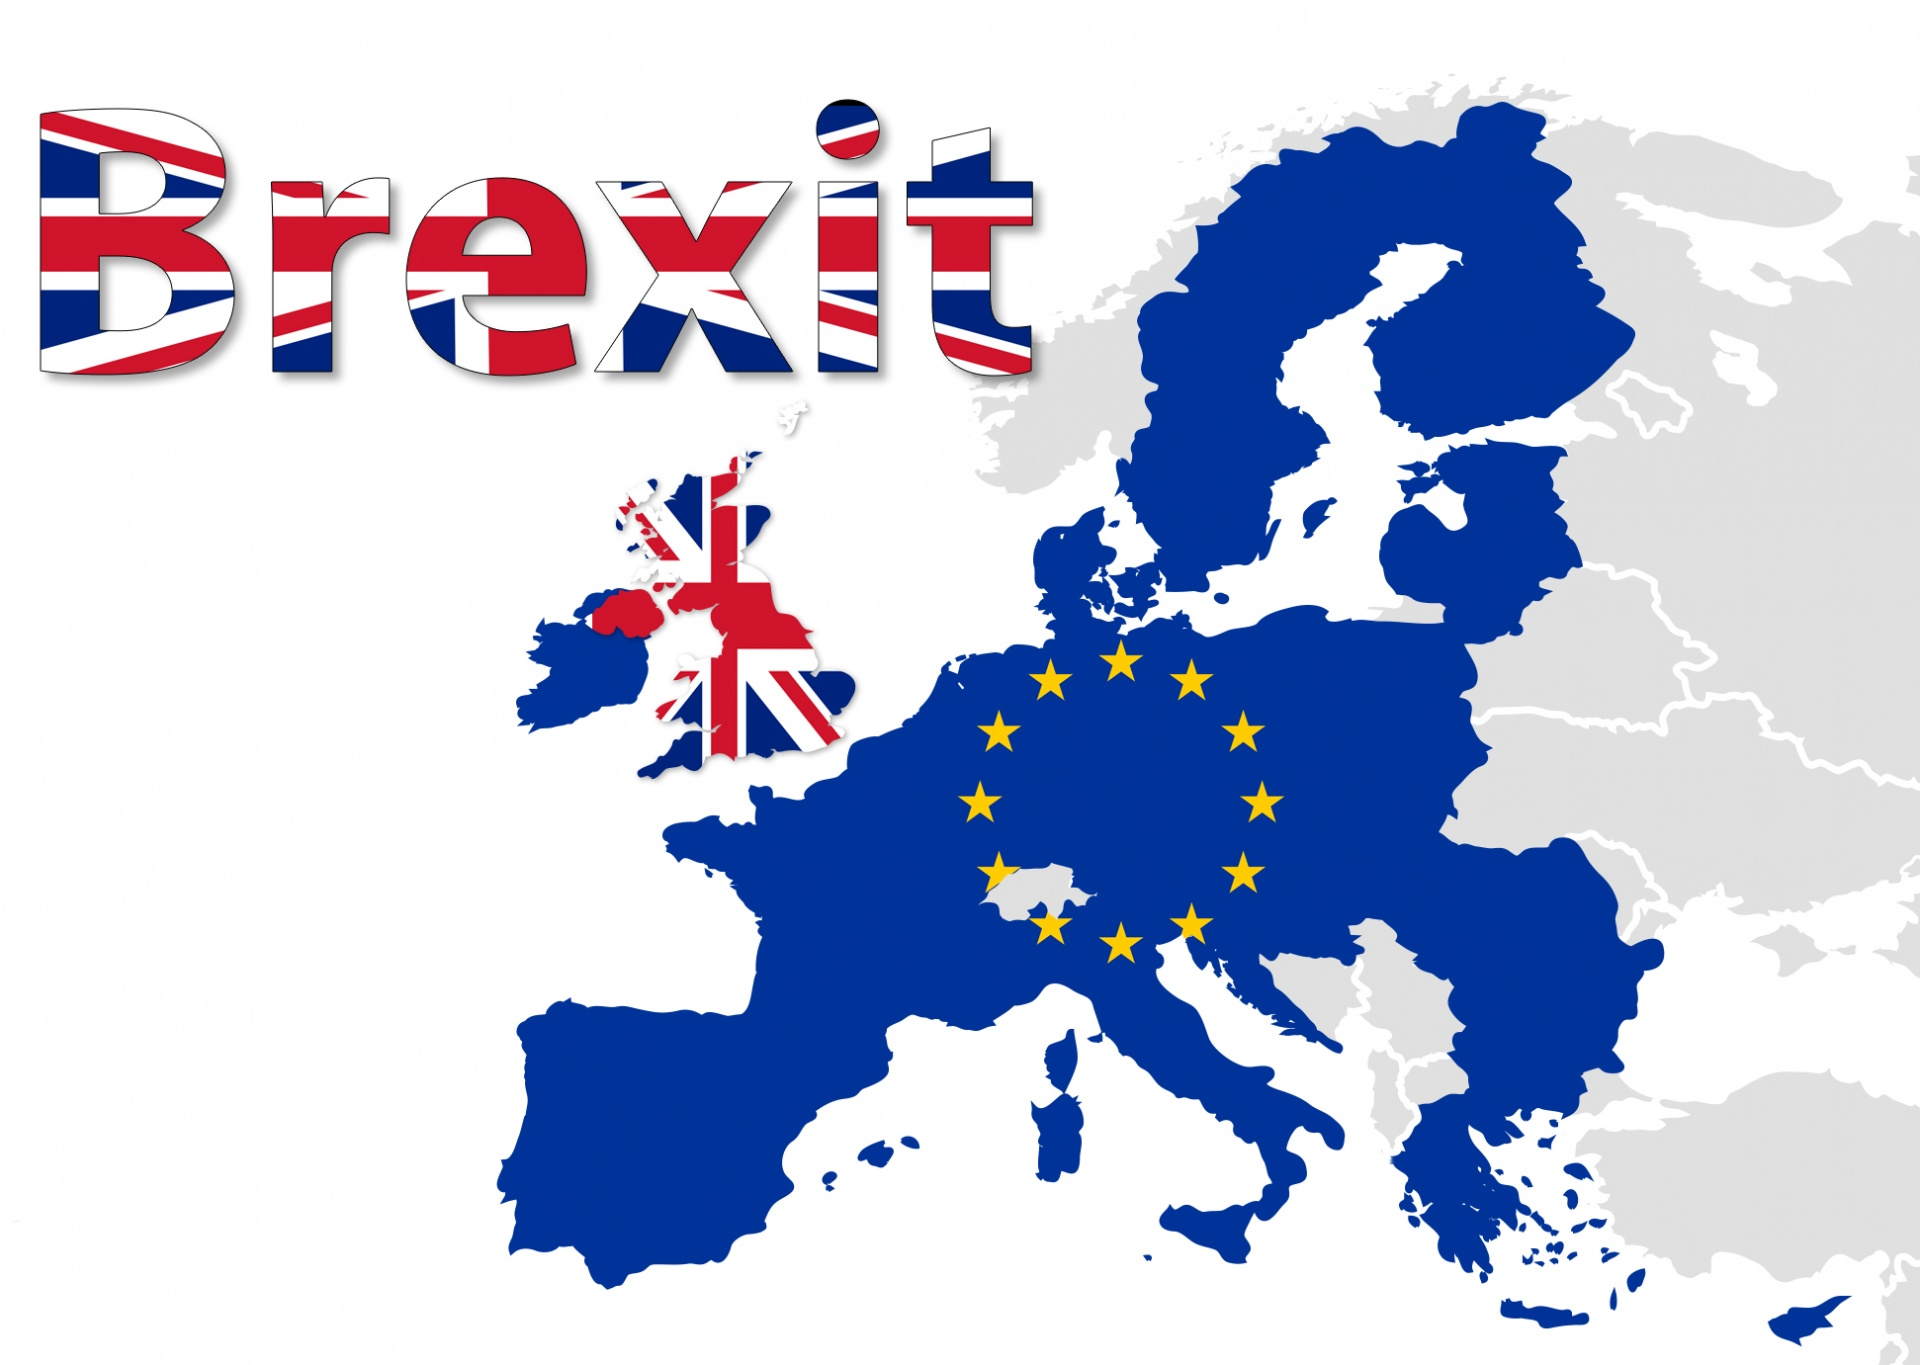 Brexit on the map of europe and EU marked